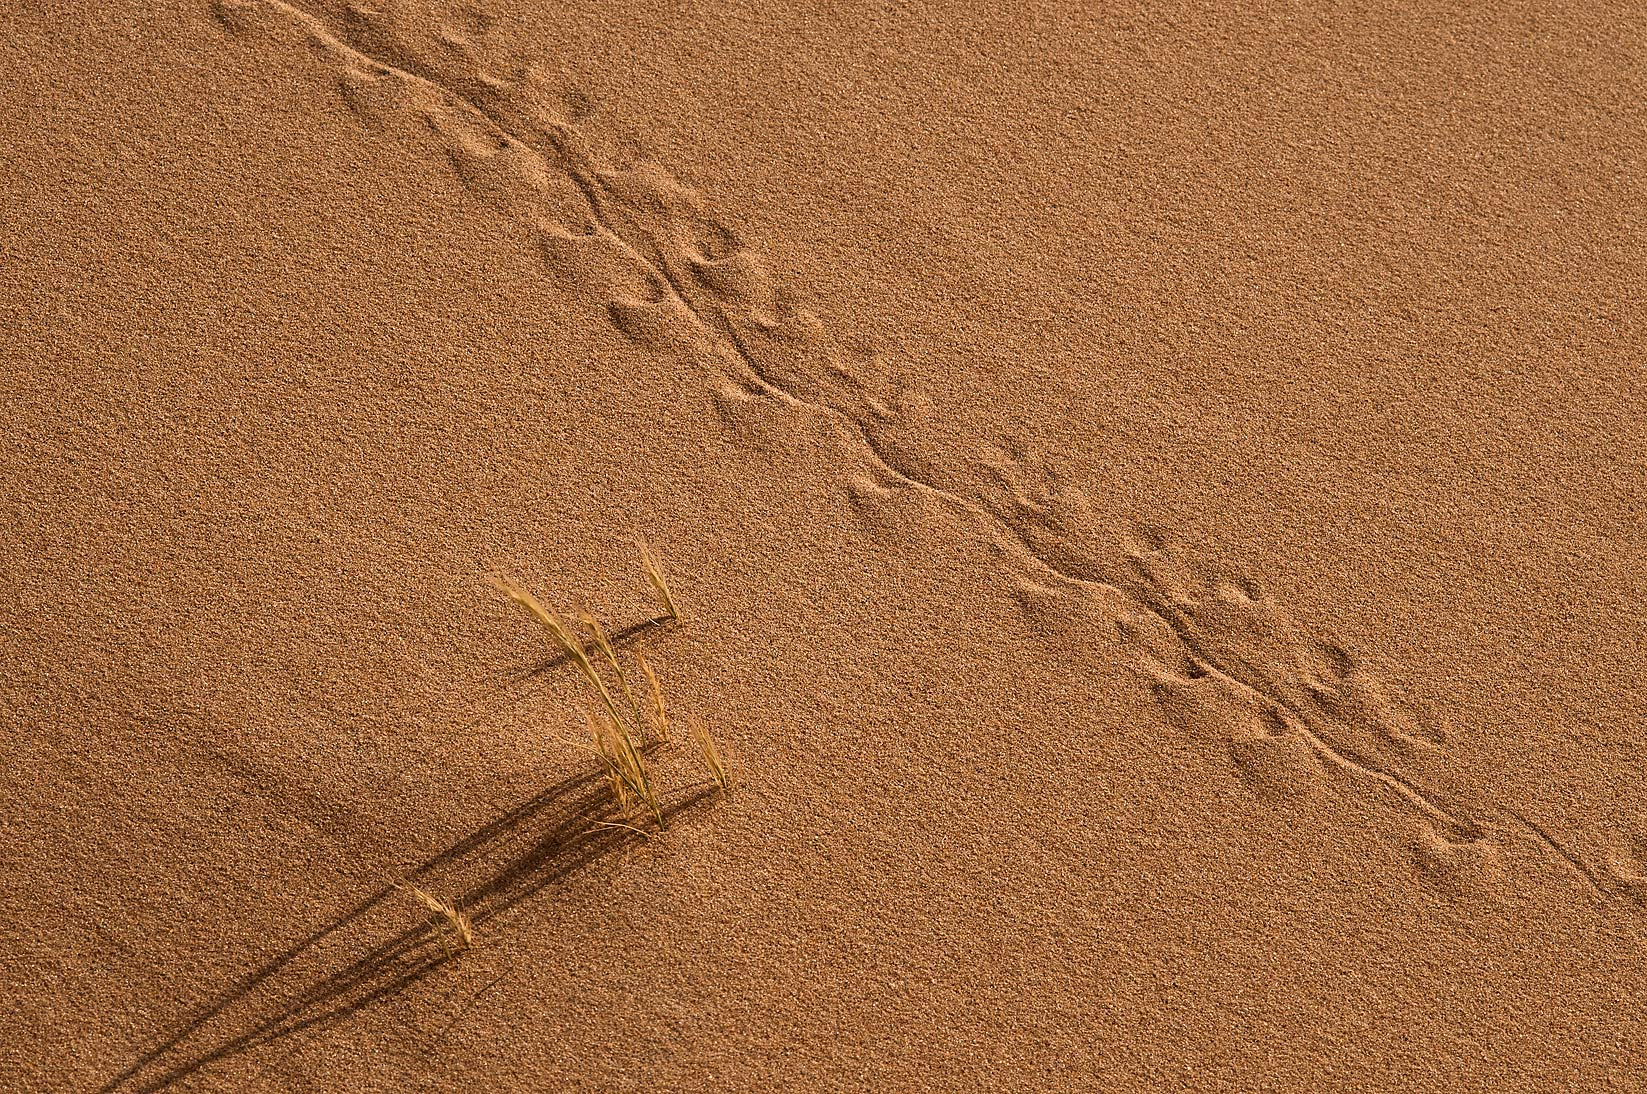 Tracks of toad-headed agama lizard at the foot of...Mesayeed, south-west from Doha. Qatar